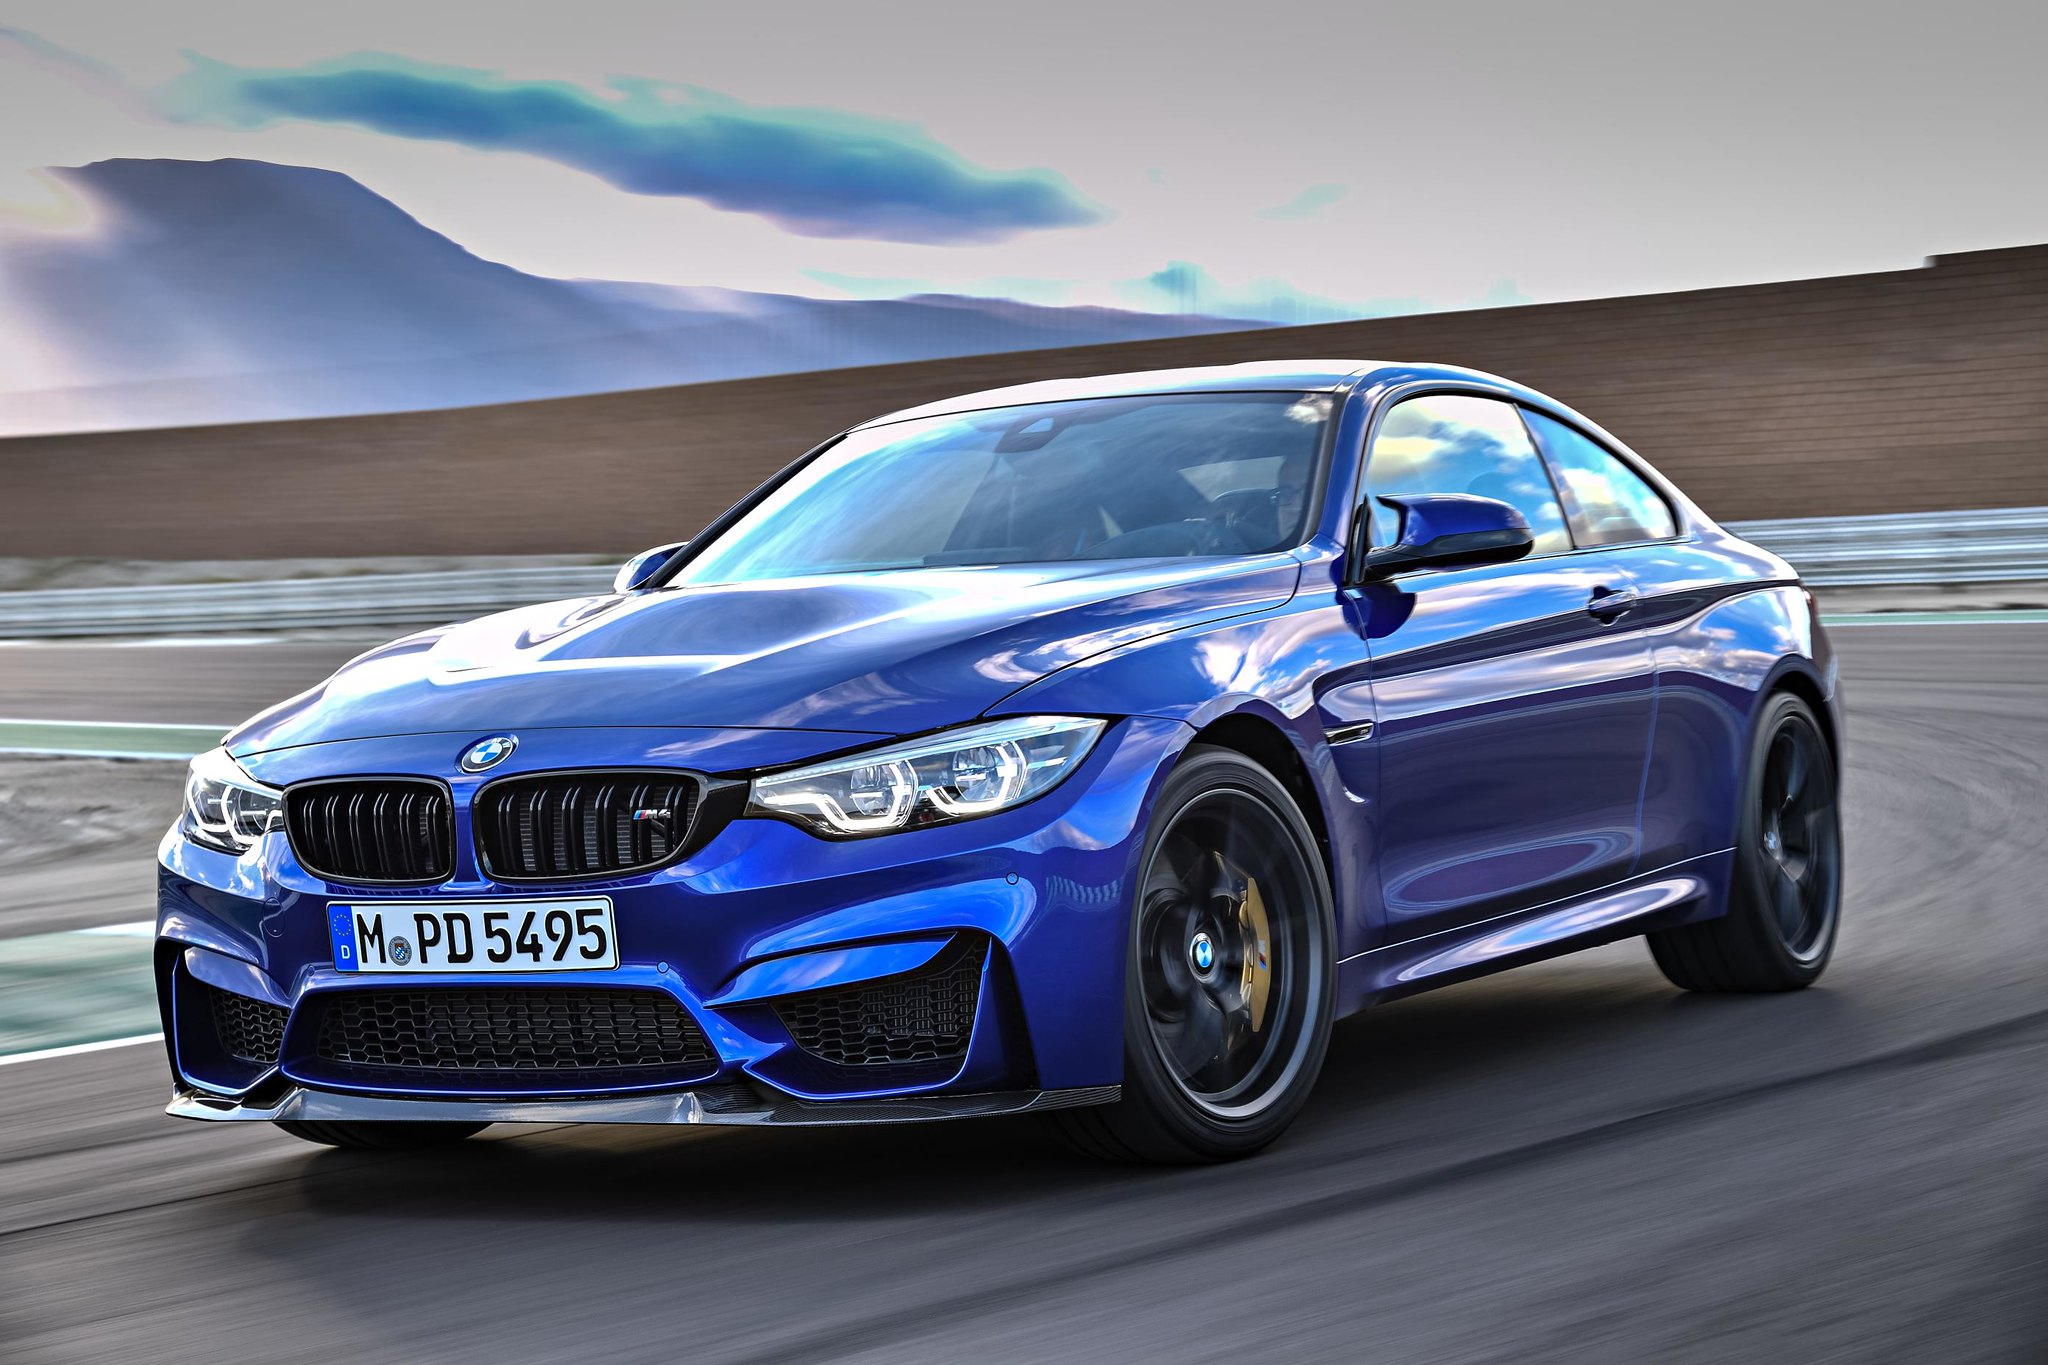 Special-edition BMW M4 CS arriving at U.S. dealerships in 2018